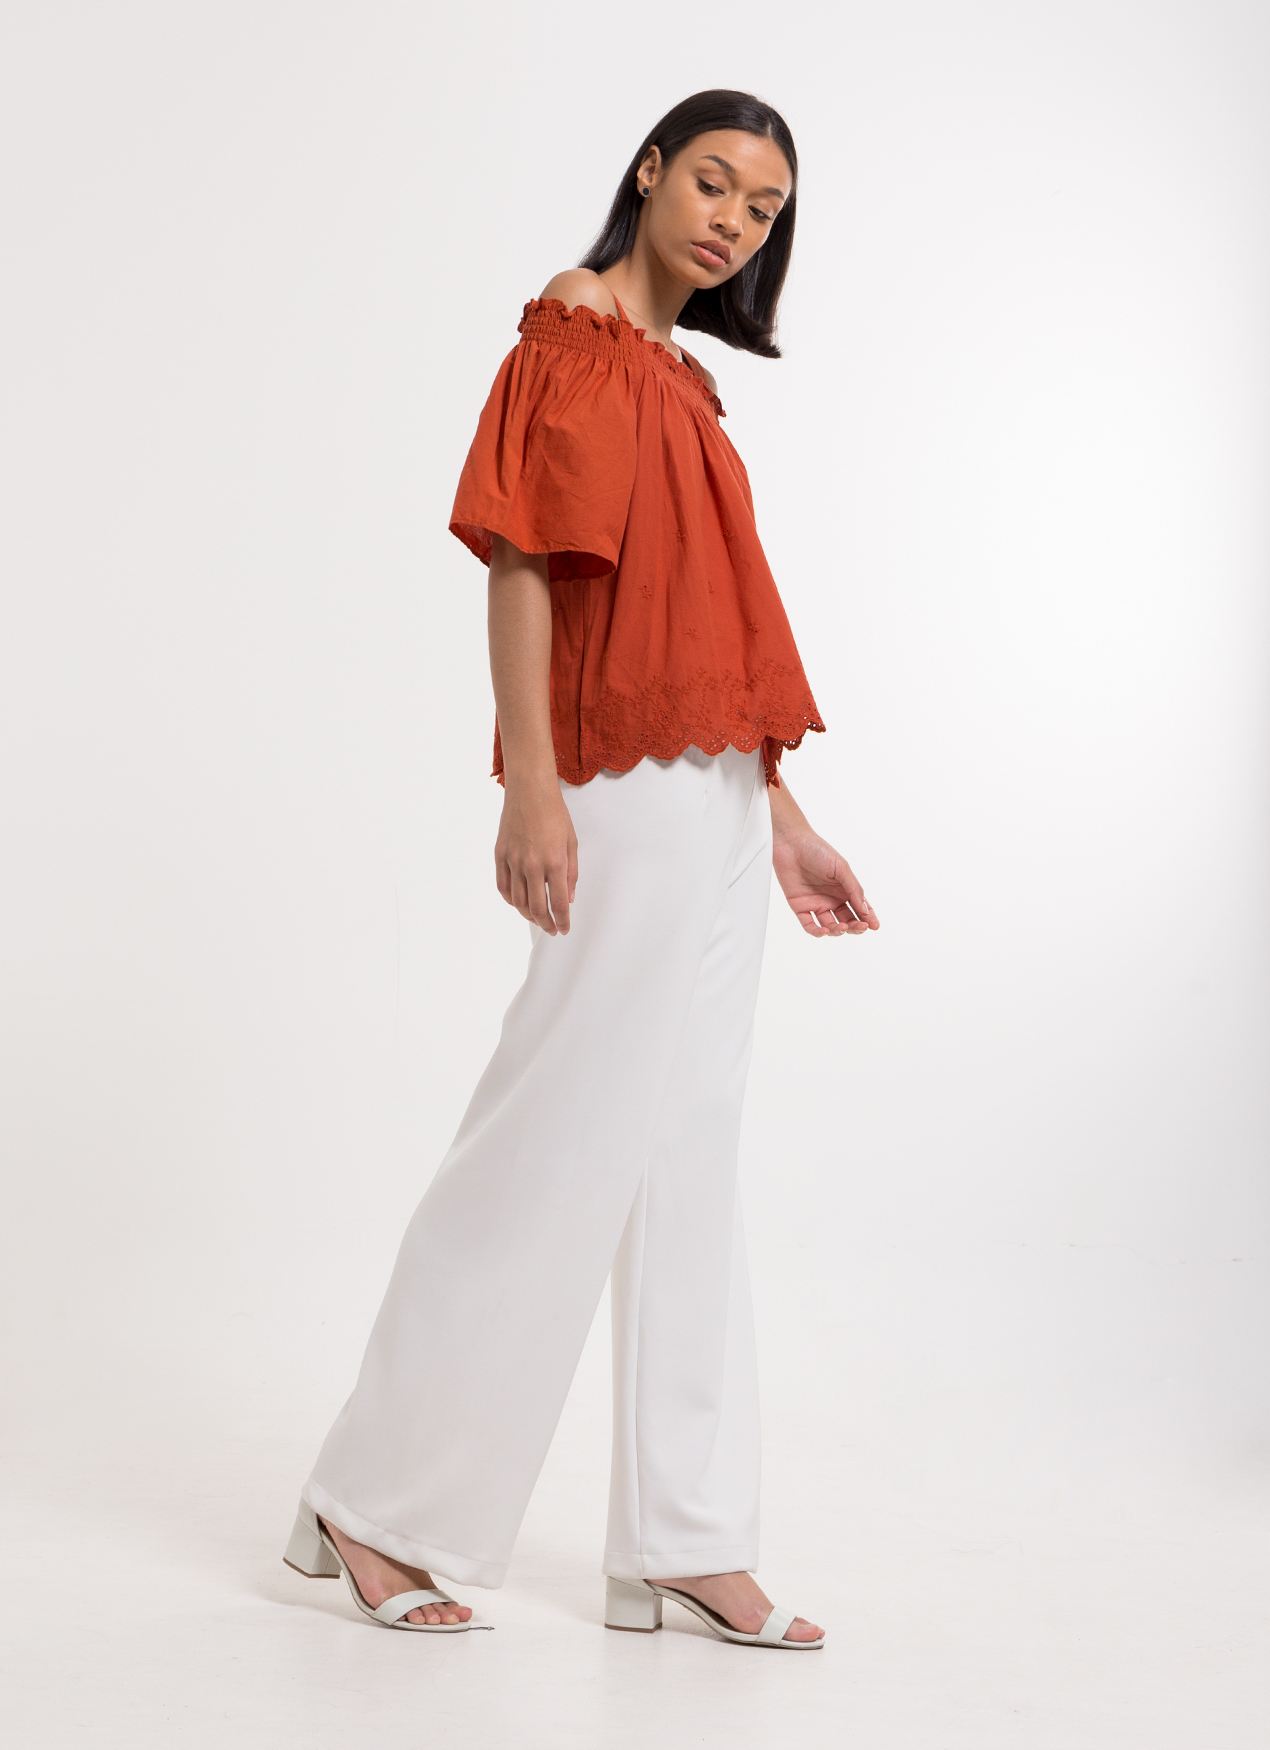 Earth, Music & Ecology Hatsuko Top - Terracotta